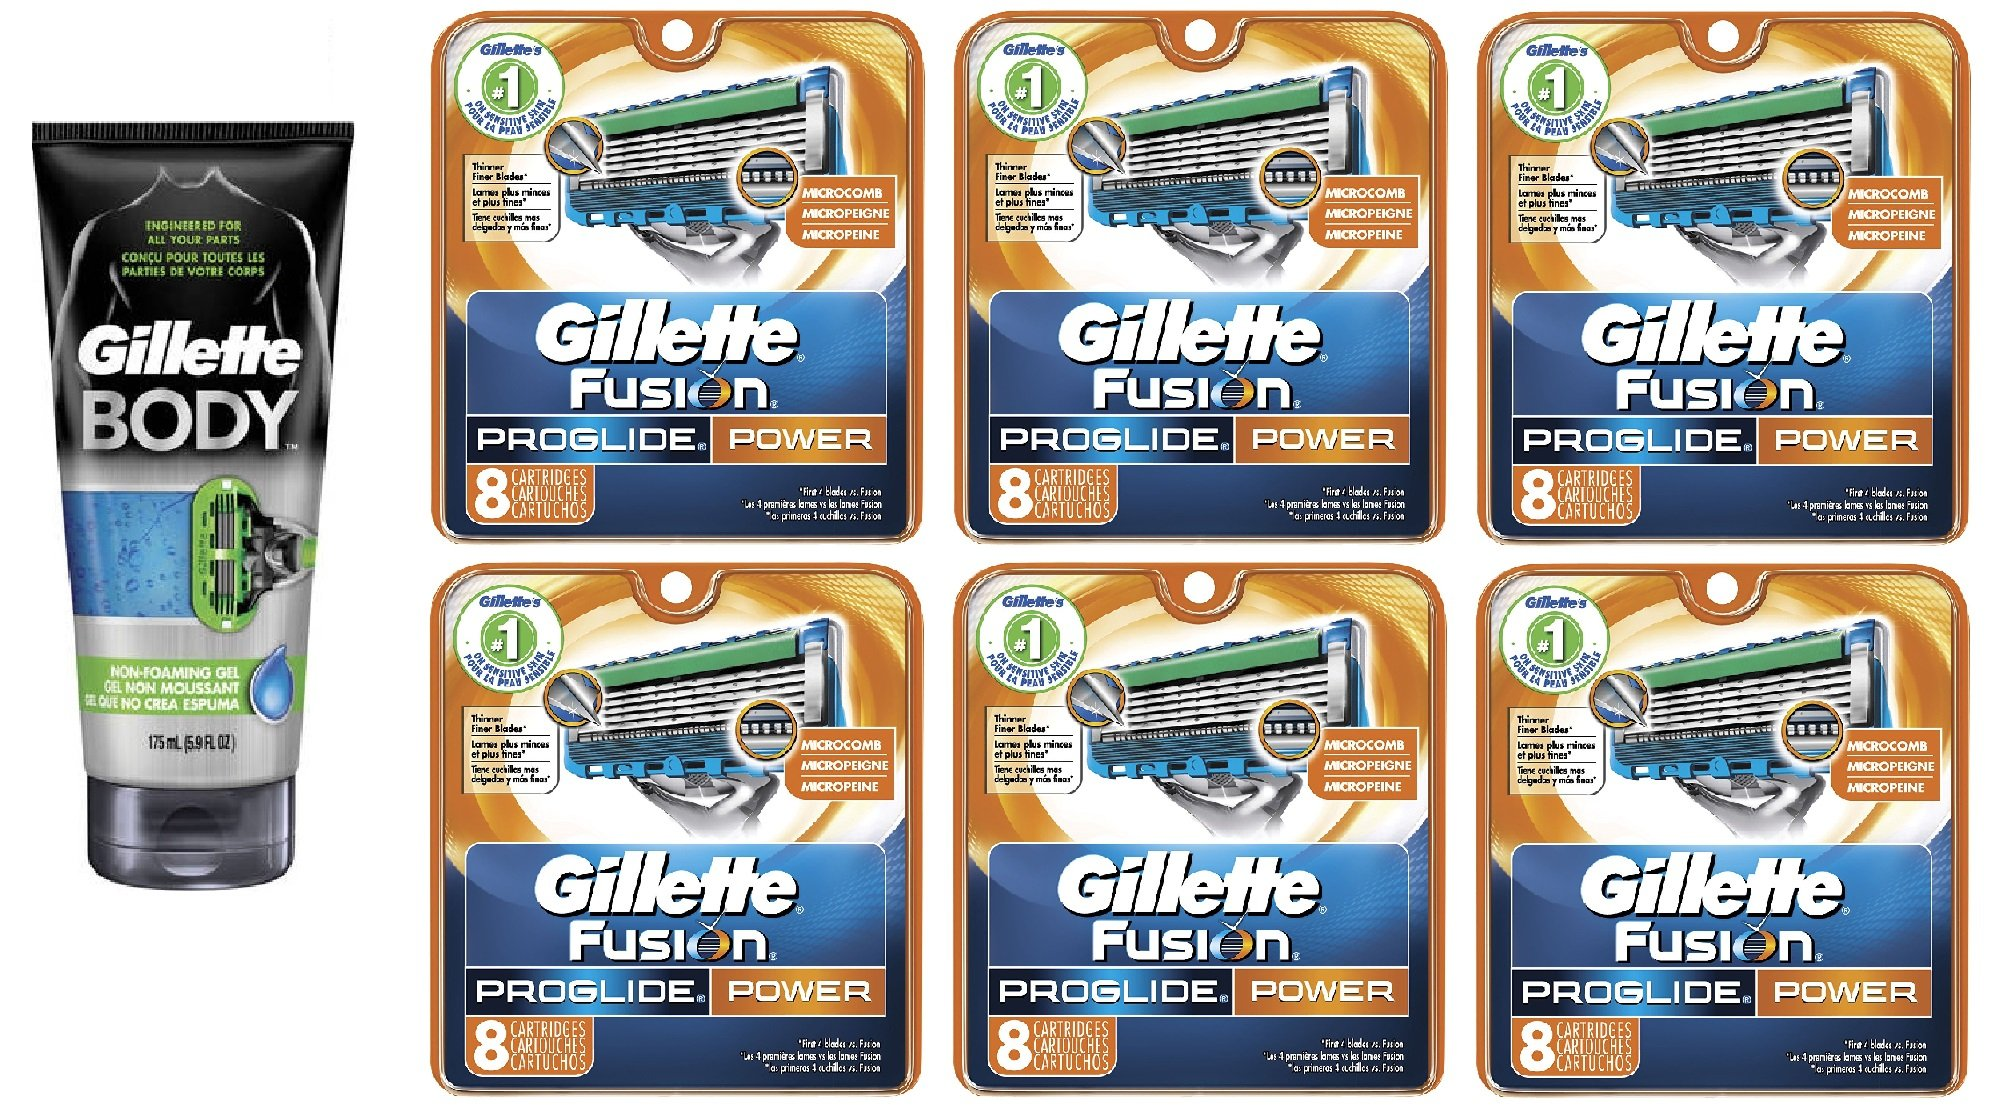 Gillette Body Non Foaming Shave Gel for Men, 5.9 Fl Oz + Fusion Proglide Power Refill Blades 8 Ct (6 Pack) + FREE Assorted Purse Kit/Cosmetic Bag Bonus Gift